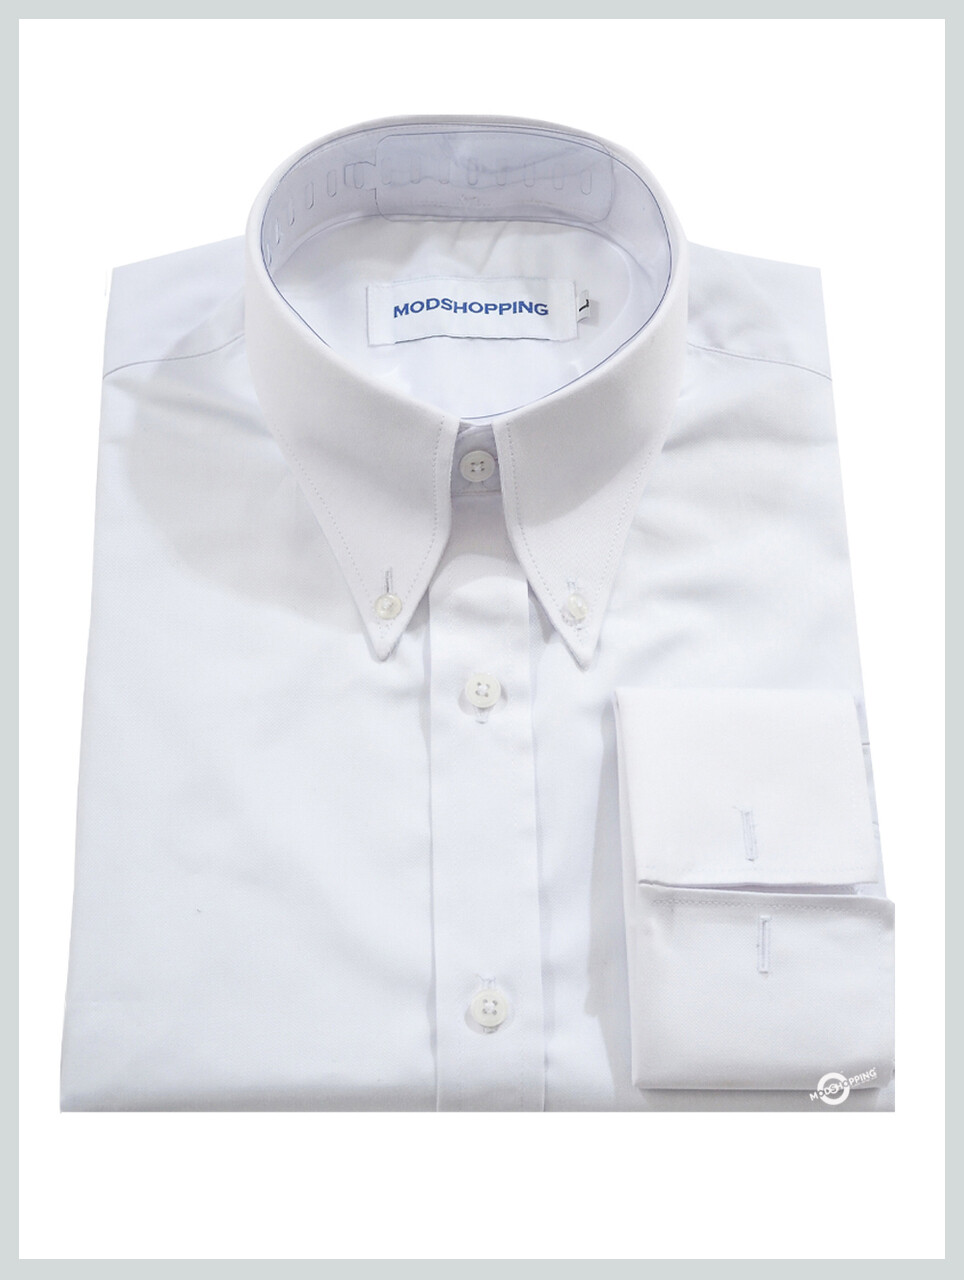 High Collar White Shirt| Formal Shirts For Men